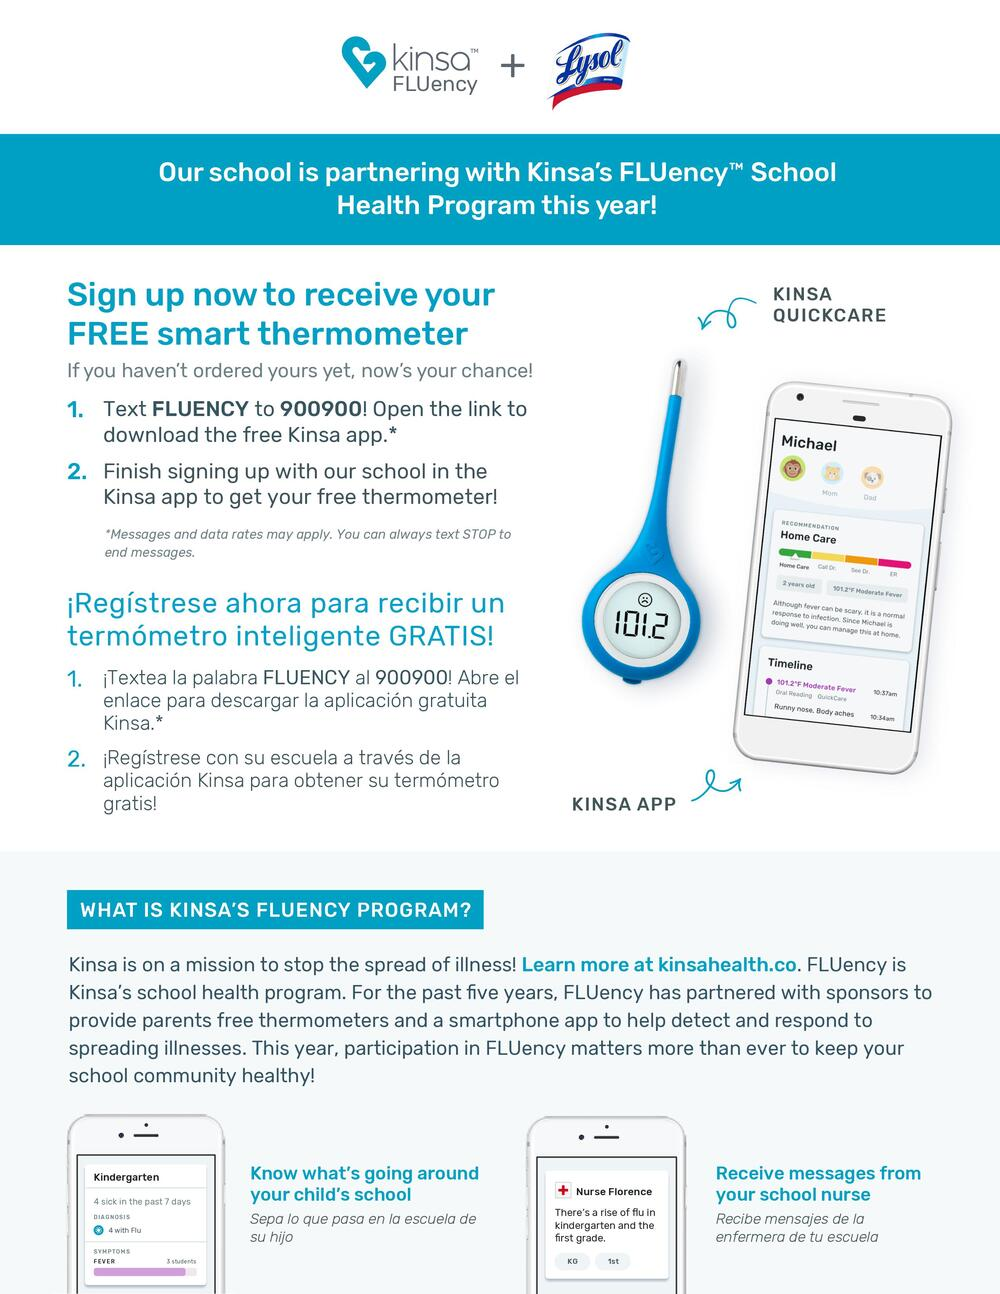 Sign up for a free thermometer